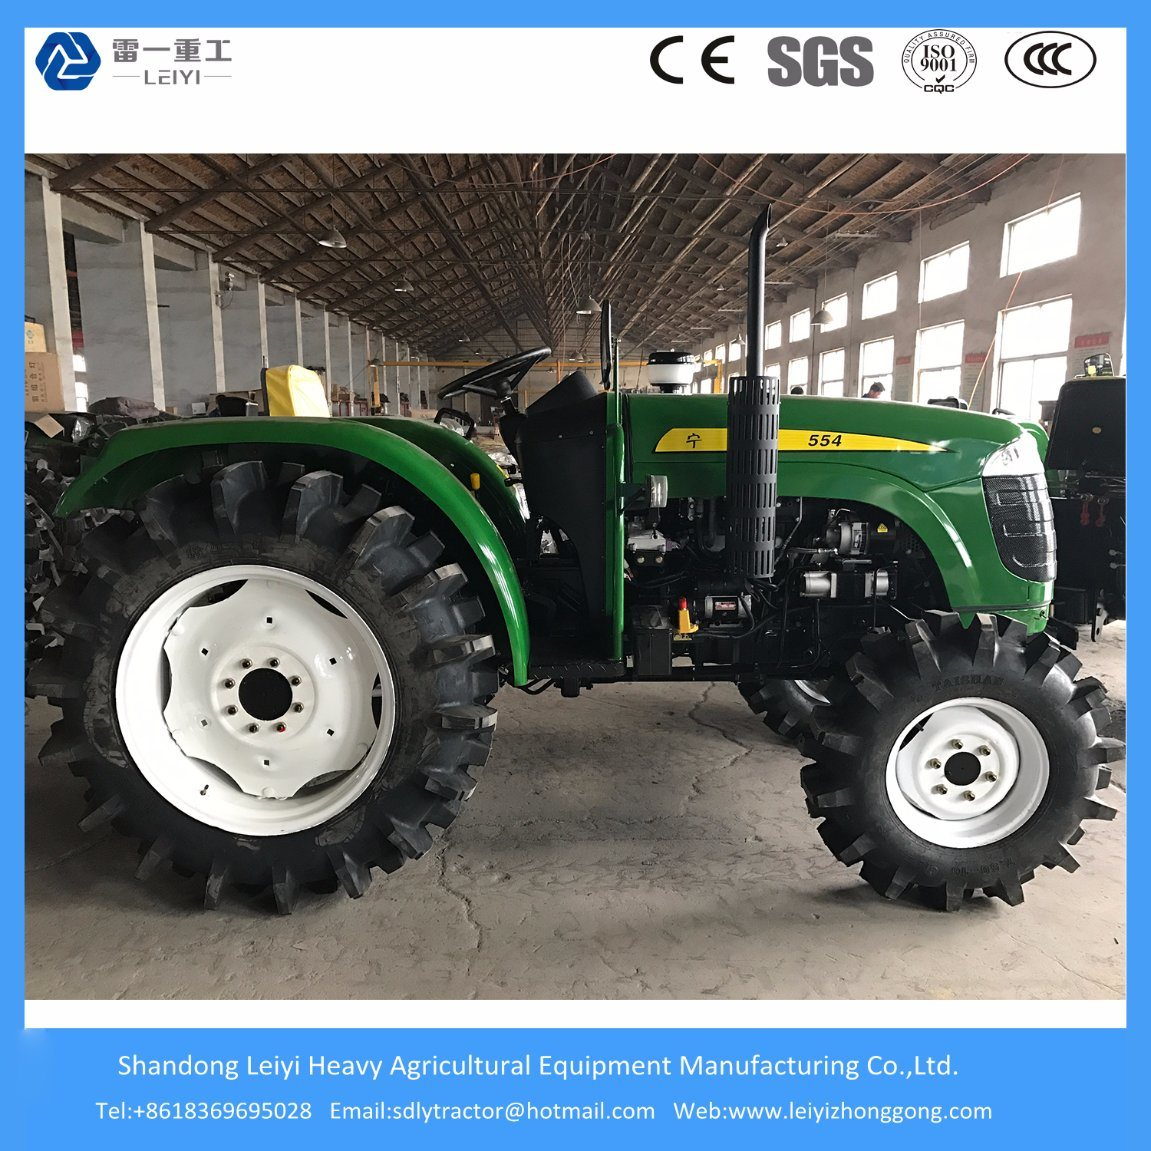 China 55 HP 4WD Mini Agricultural/Diesel/Compact/Lawn Tractor for Farming